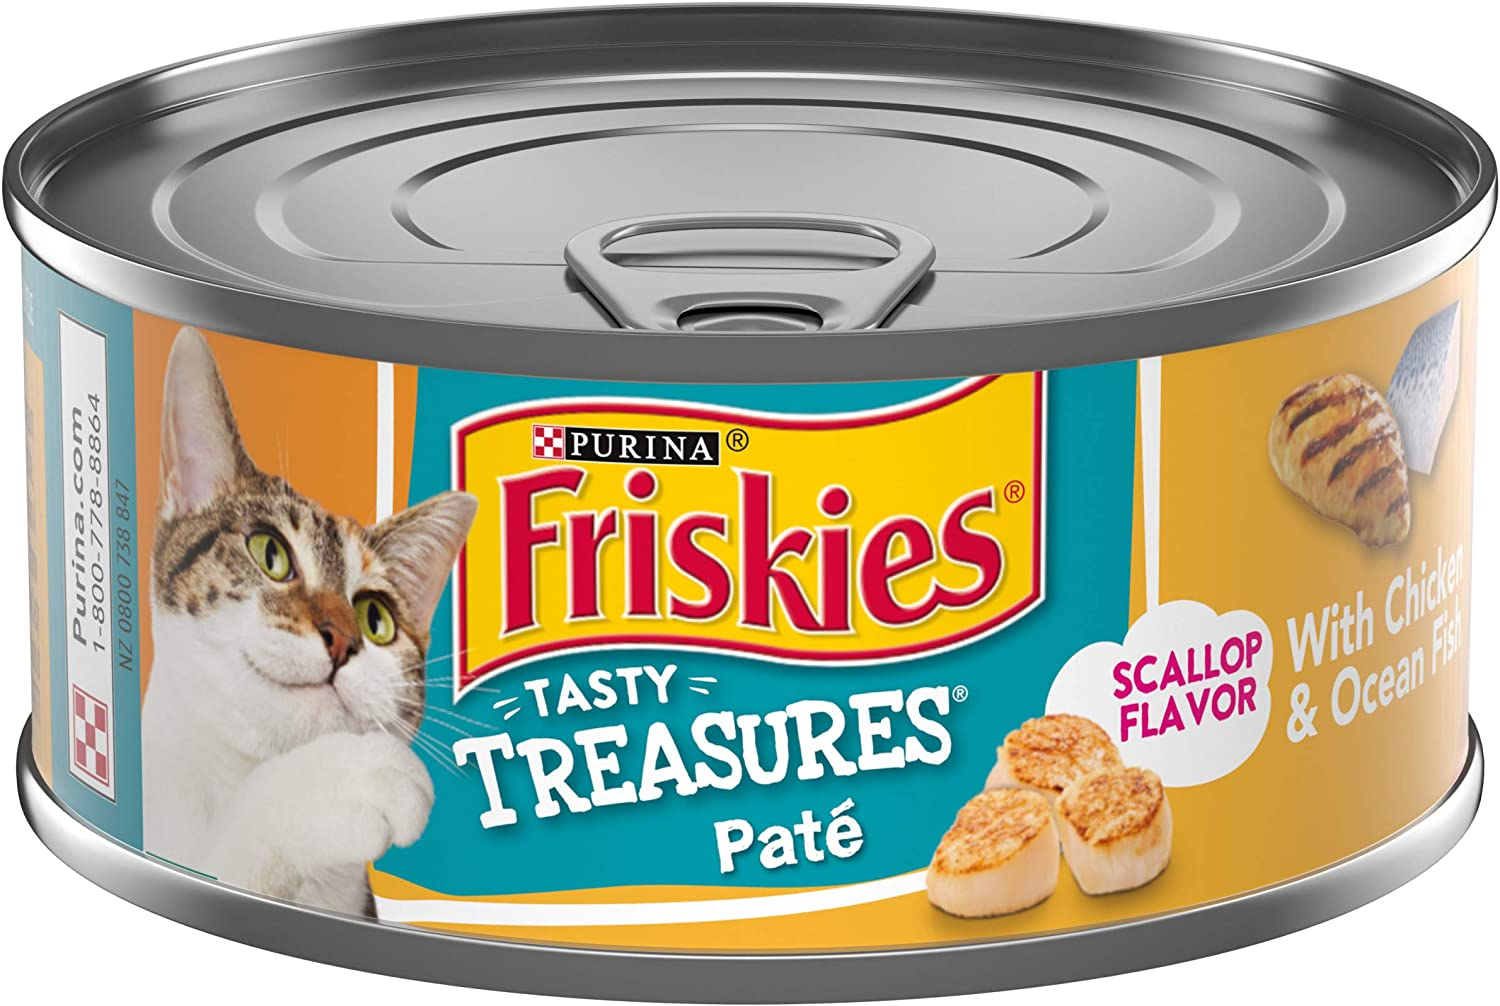 Purina Friskies Pate Wet Cat Food, Tasty Treasures With Chicken & Ocean Fish and Scallop Flavor - (24) 5.5 oz. Cans